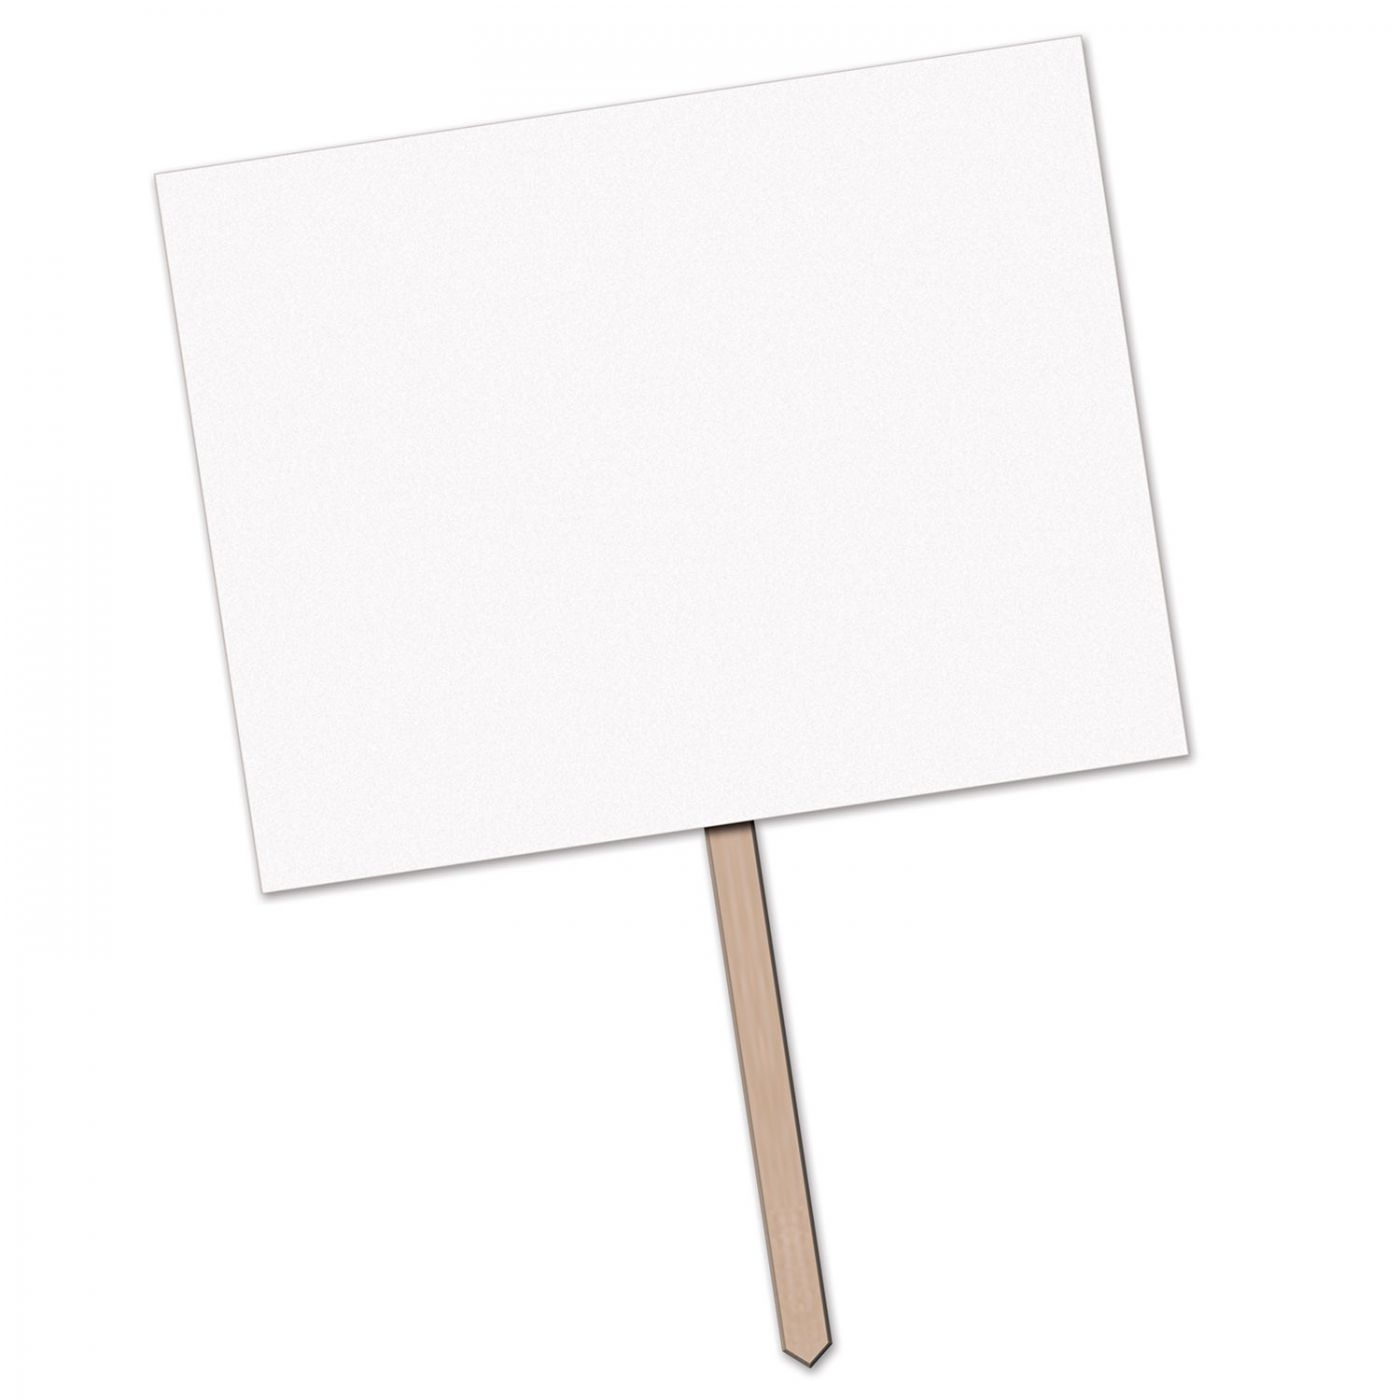 Blank  Yard Sign (6) image